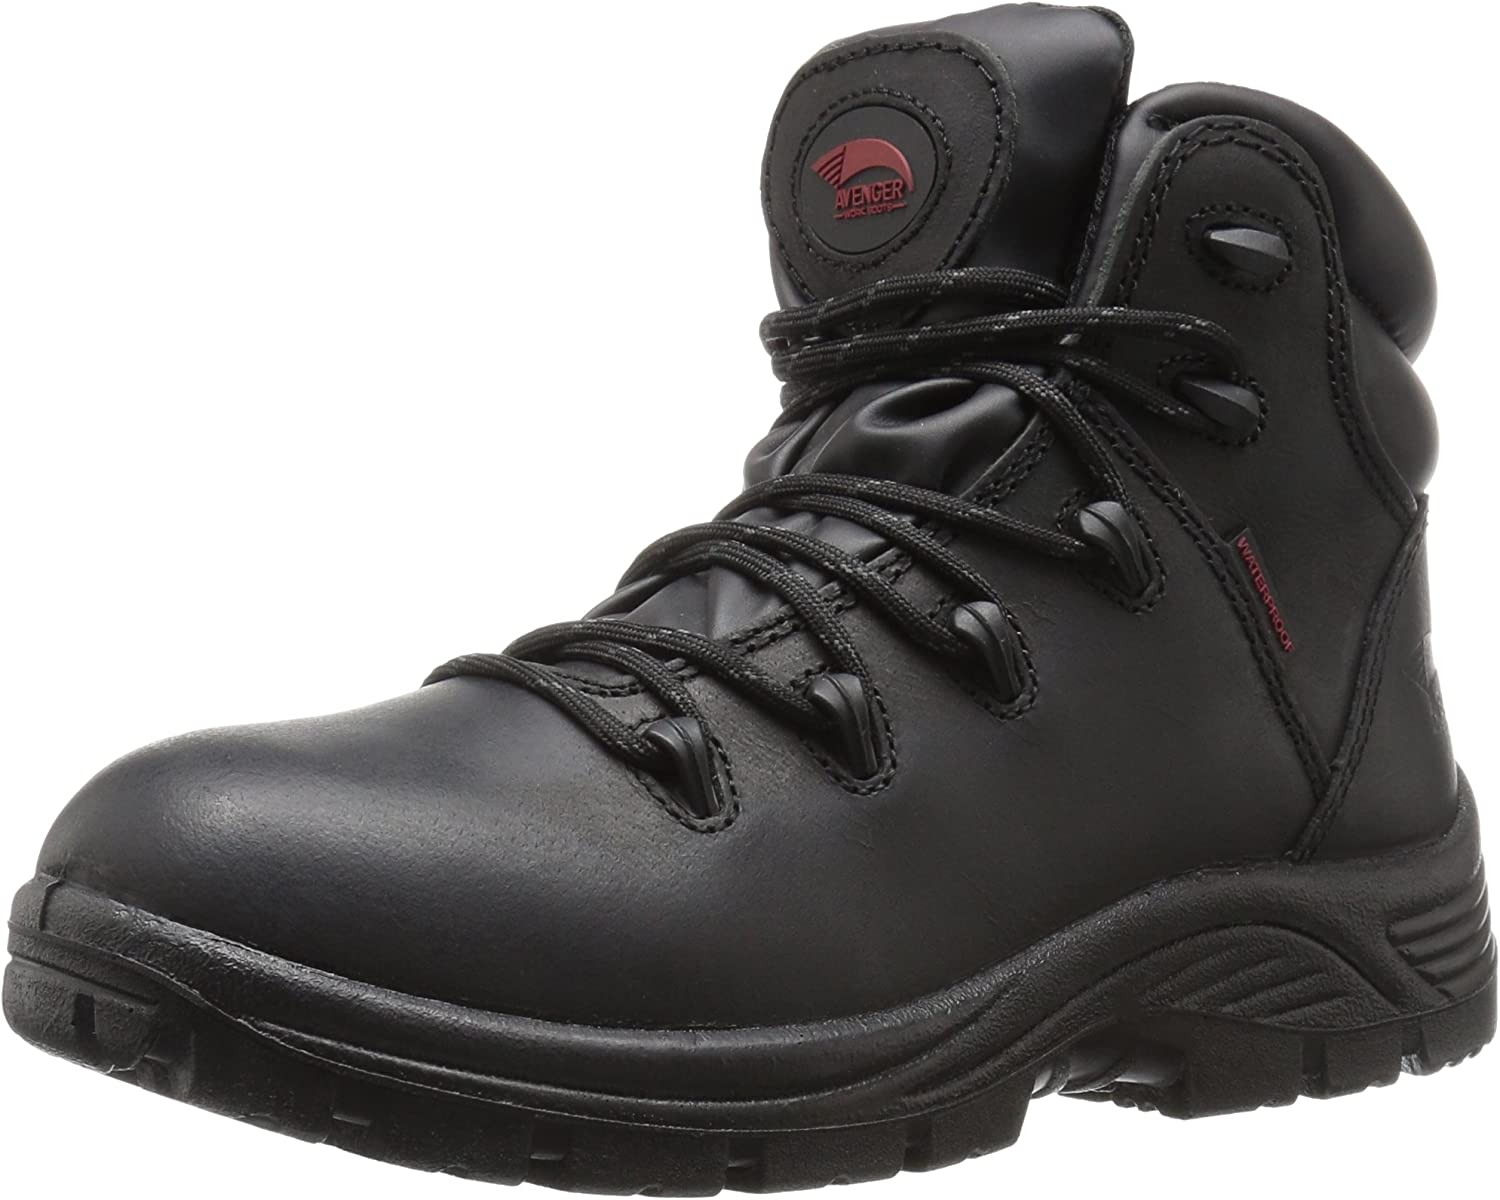 Avenger Safety Footwear Mens Avenger 7623 Mens Leather Waterproof Soft Toe Eh Work Boot Industrial & Construction shoes